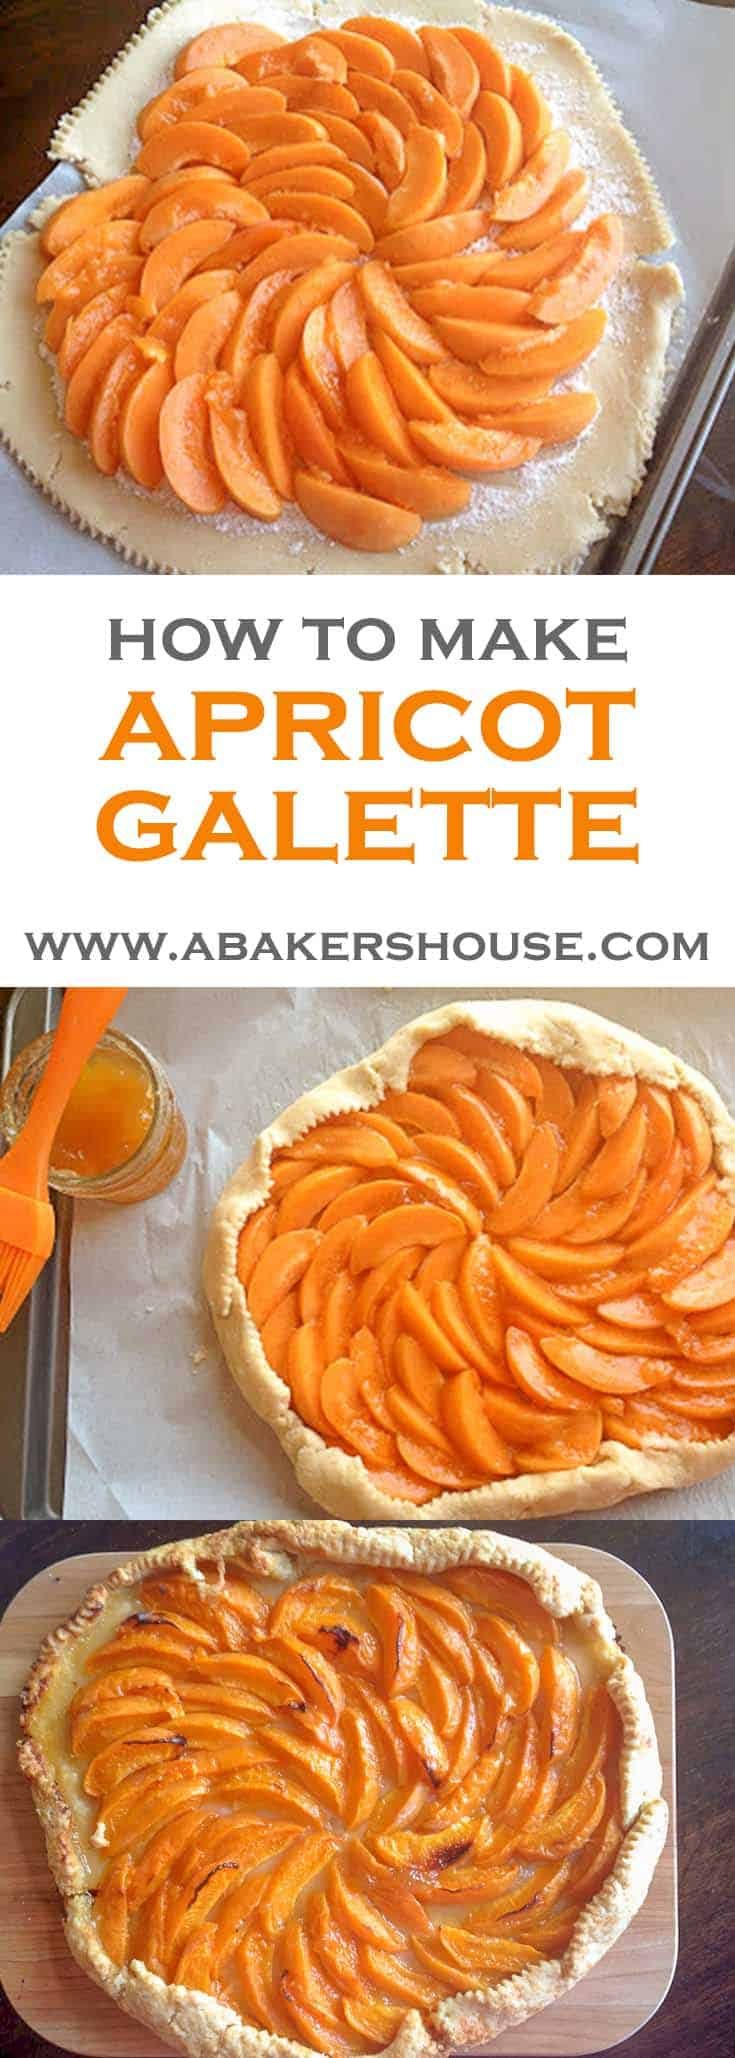 """Apricot galette is a dessert that can change throughout the year depending on your available, fresh ingredients. A galette is a free-form pastry usually topped with fruit. It's also a great way to avoid making a double-crust pie. Call it """"rustic"""" and your dessert is an instant success! #abakershouse #apricot #galette #easypie #openfacepie #singlecrustpie #fruitpie"""